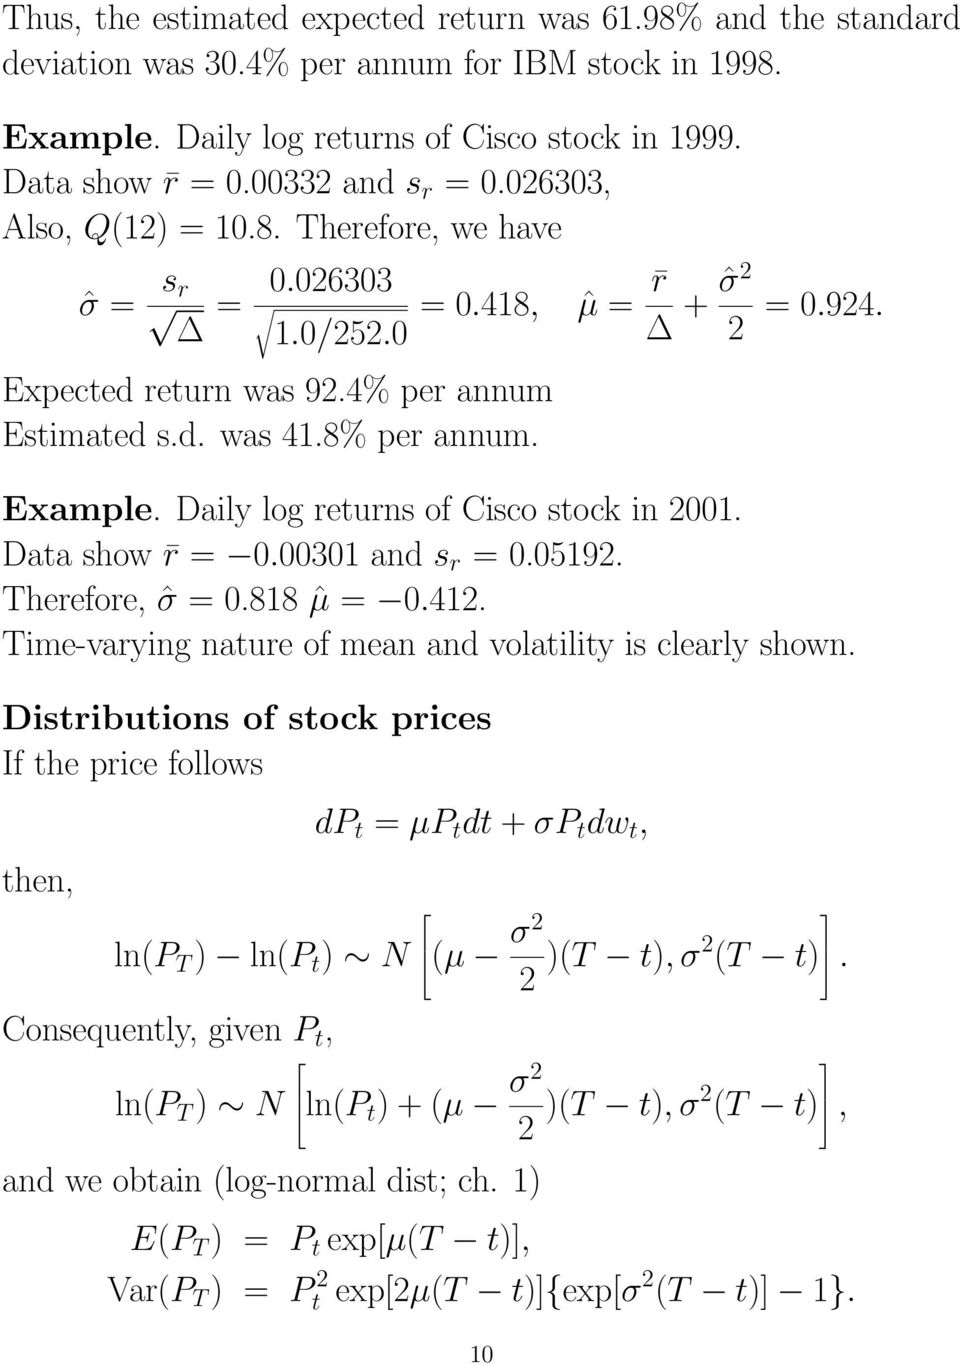 Example. Daily log returns of Cisco stock in 2001. Data show r = 0.00301 and s r = 0.05192. Therefore, ˆσ = 0.818 ˆµ = 0.412. Time-varying nature of mean and volatility is clearly shown.